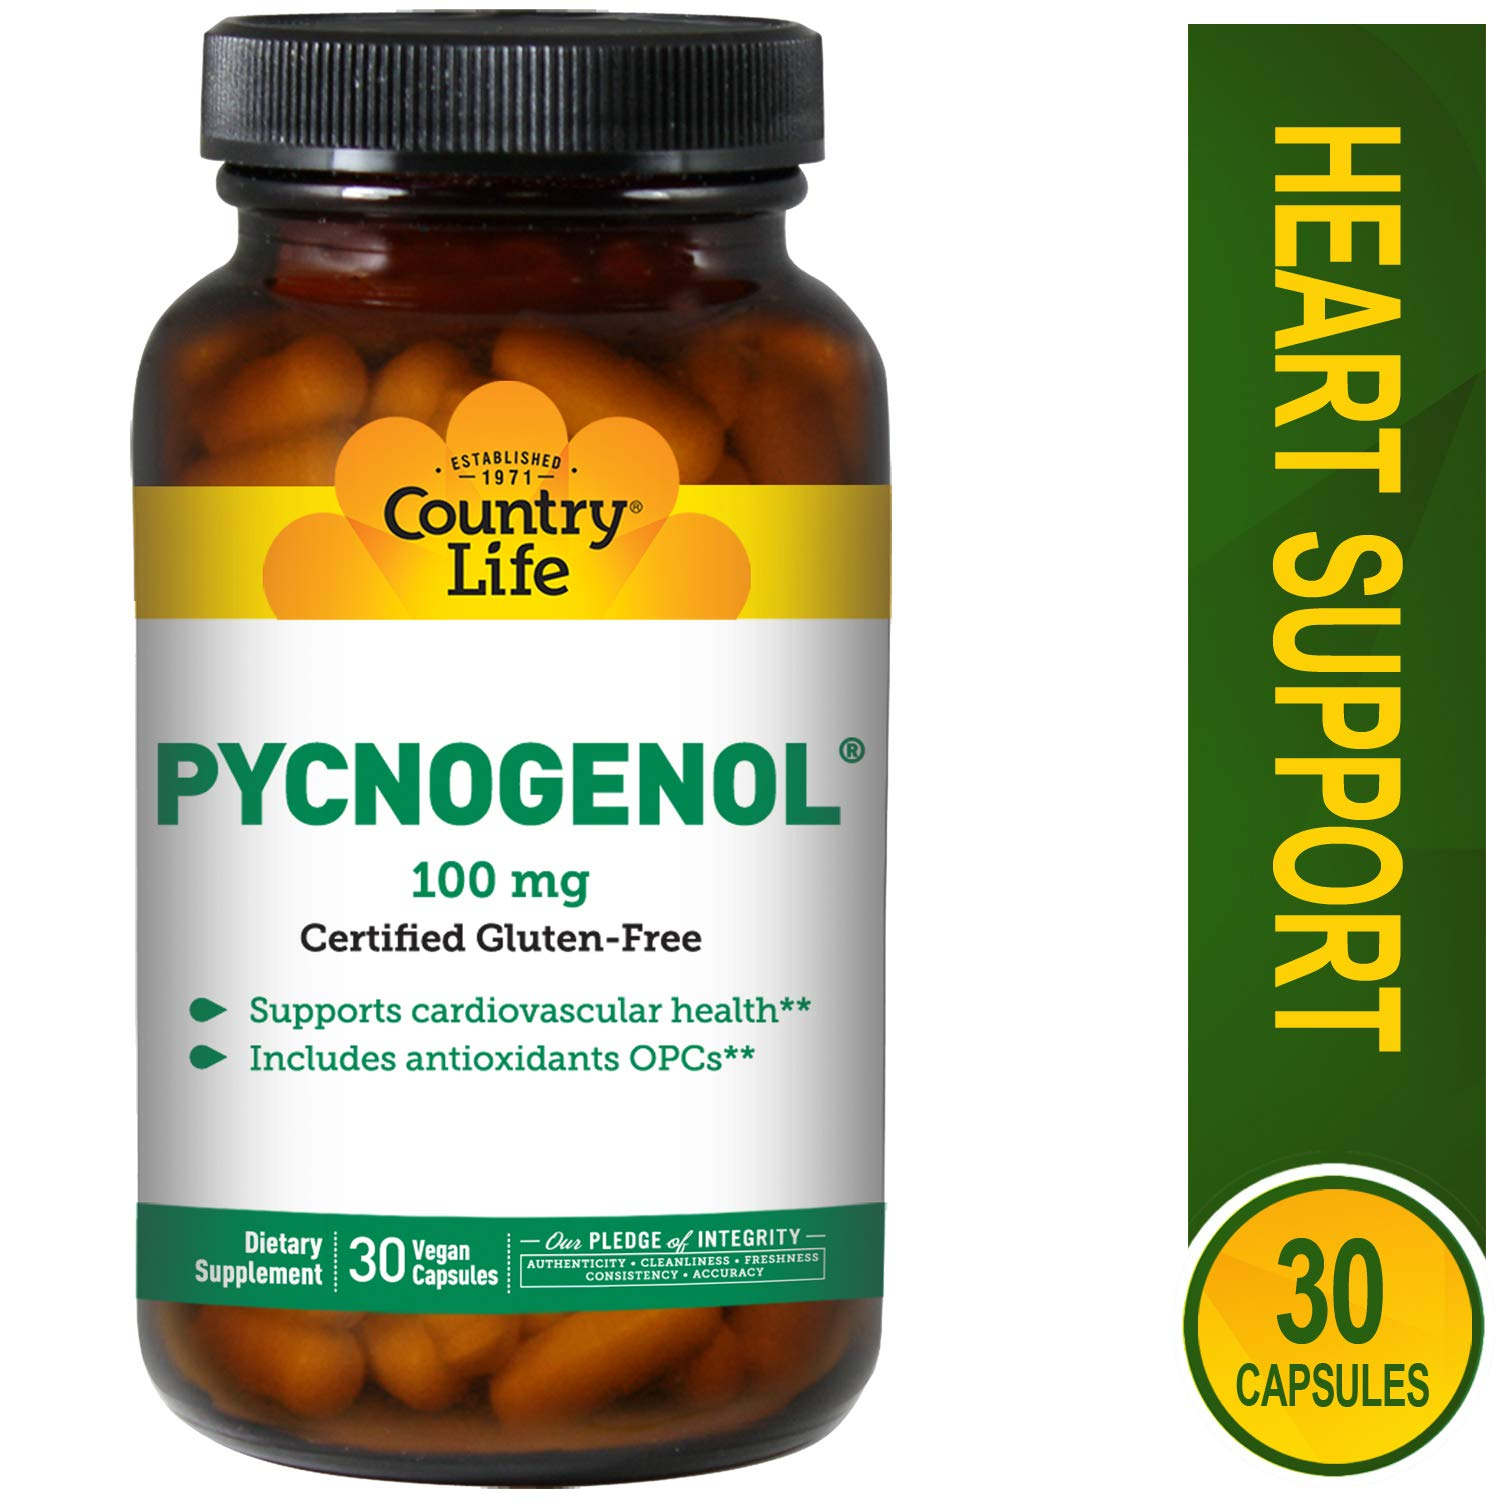 Country Life Pycnogenol 100 mg - 30 Vegan Capsules